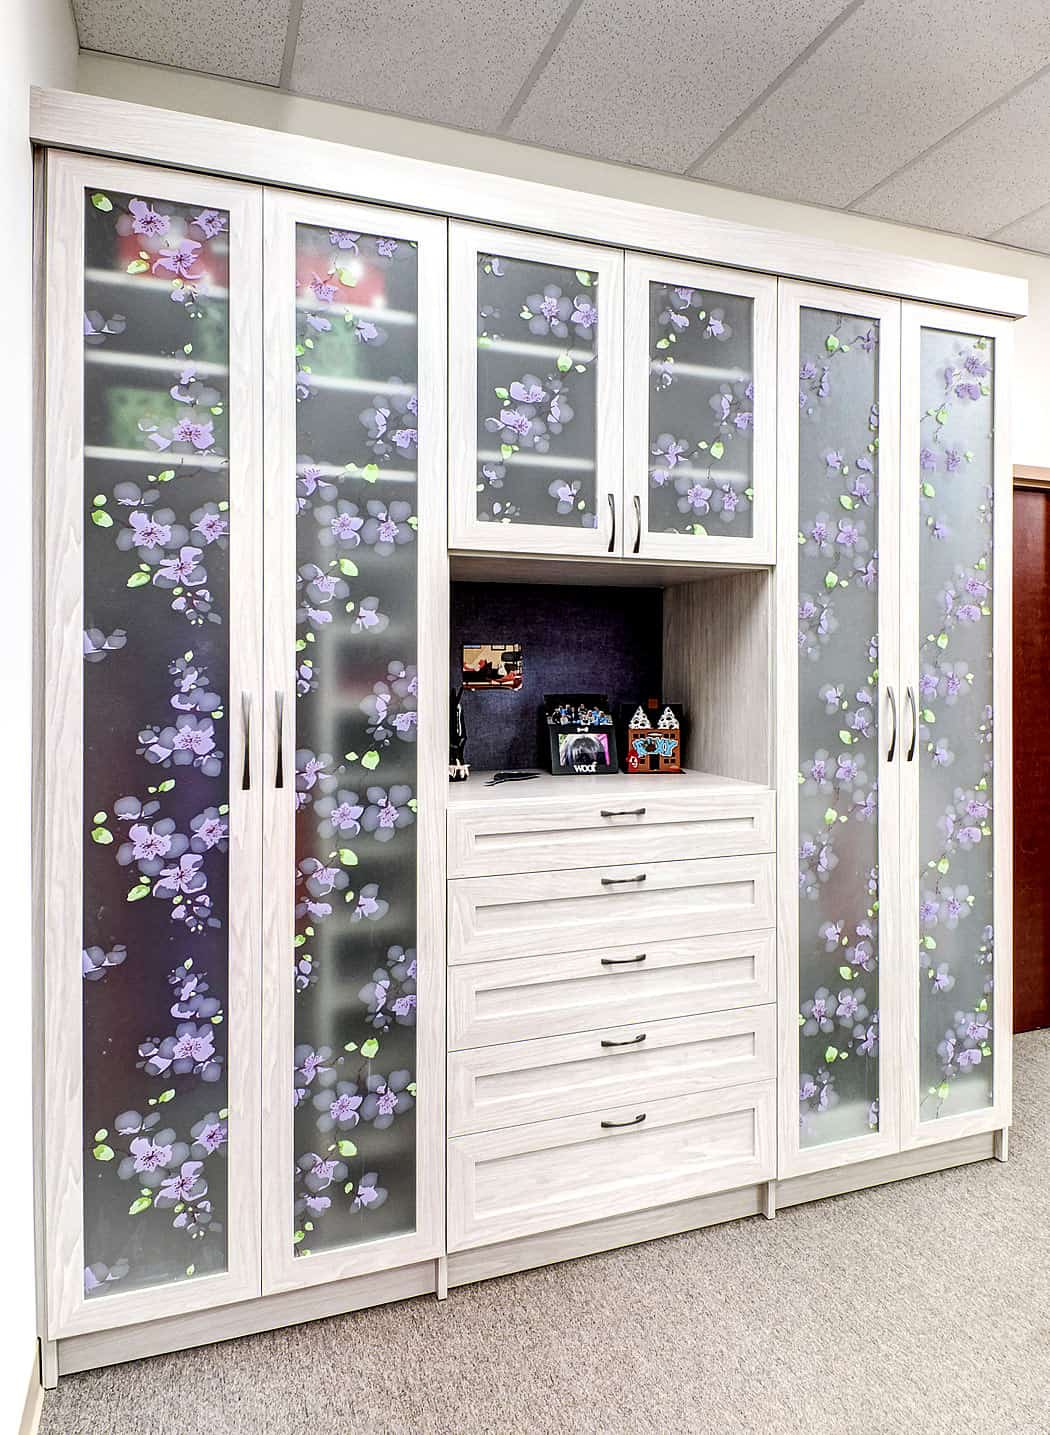 Wardrobe and dresser design by Closet Works.